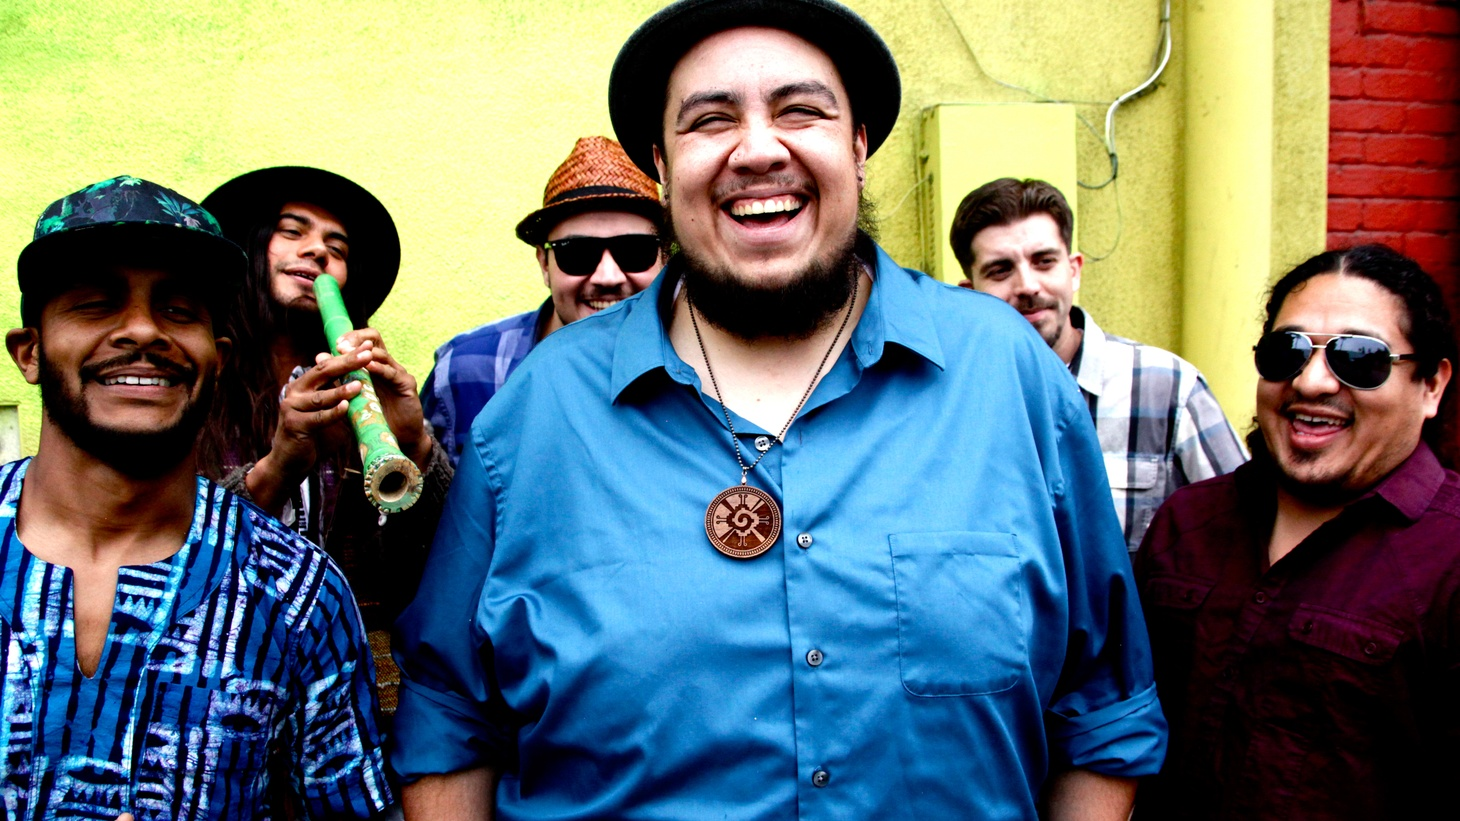 Finally, the local collective Buyepongo, one of LA's favorite local proponents of mashing-up various Latin American styles into a whole new thing, are releasing their debut album, nicely capturing their infectious vibe to which those who have seen their energetic live act can fully attest.